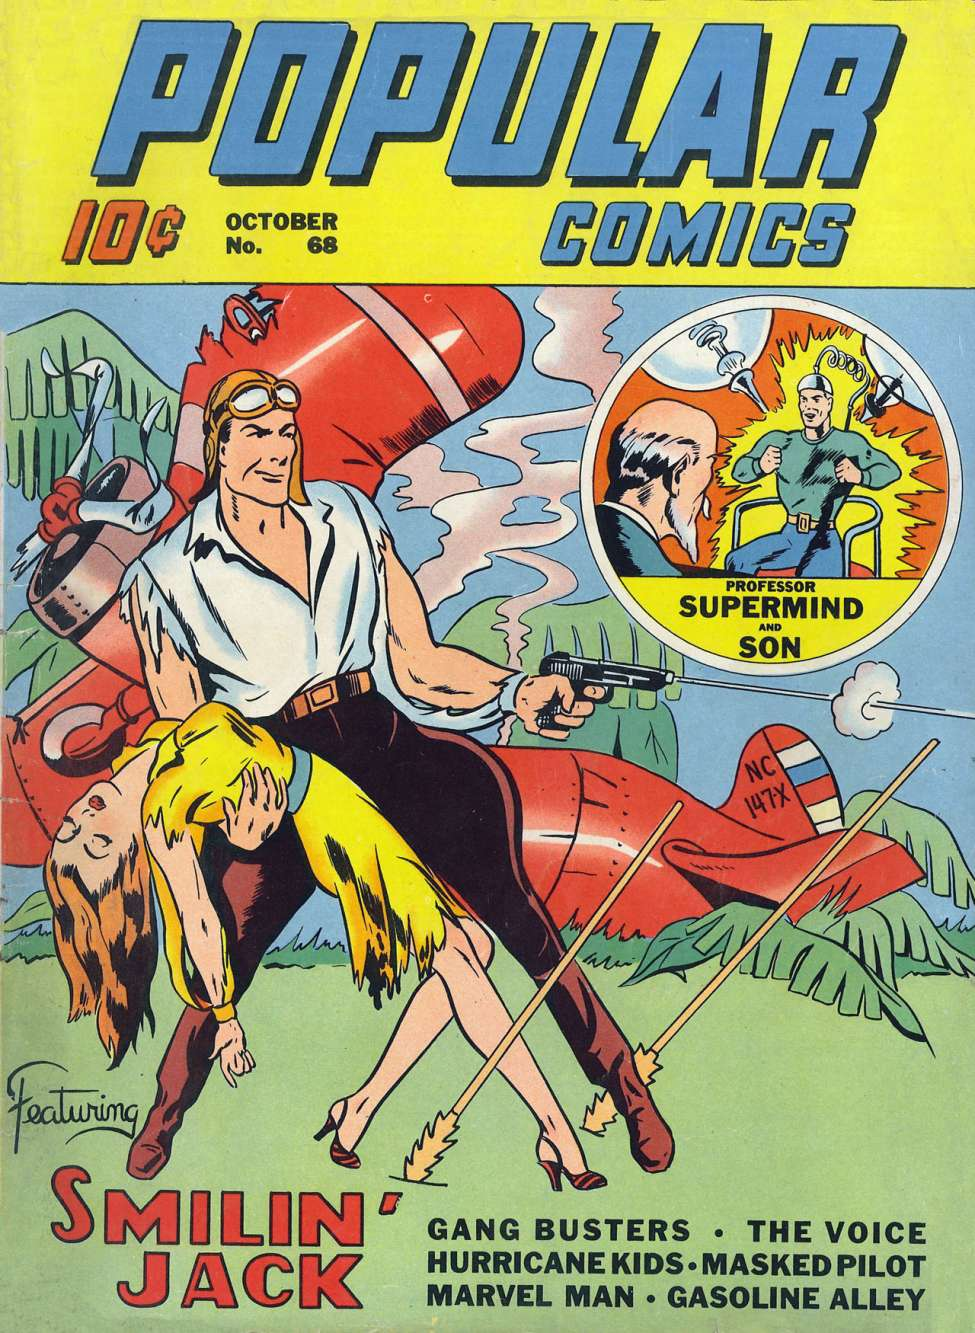 Comic Book Cover For Popular Comics #68